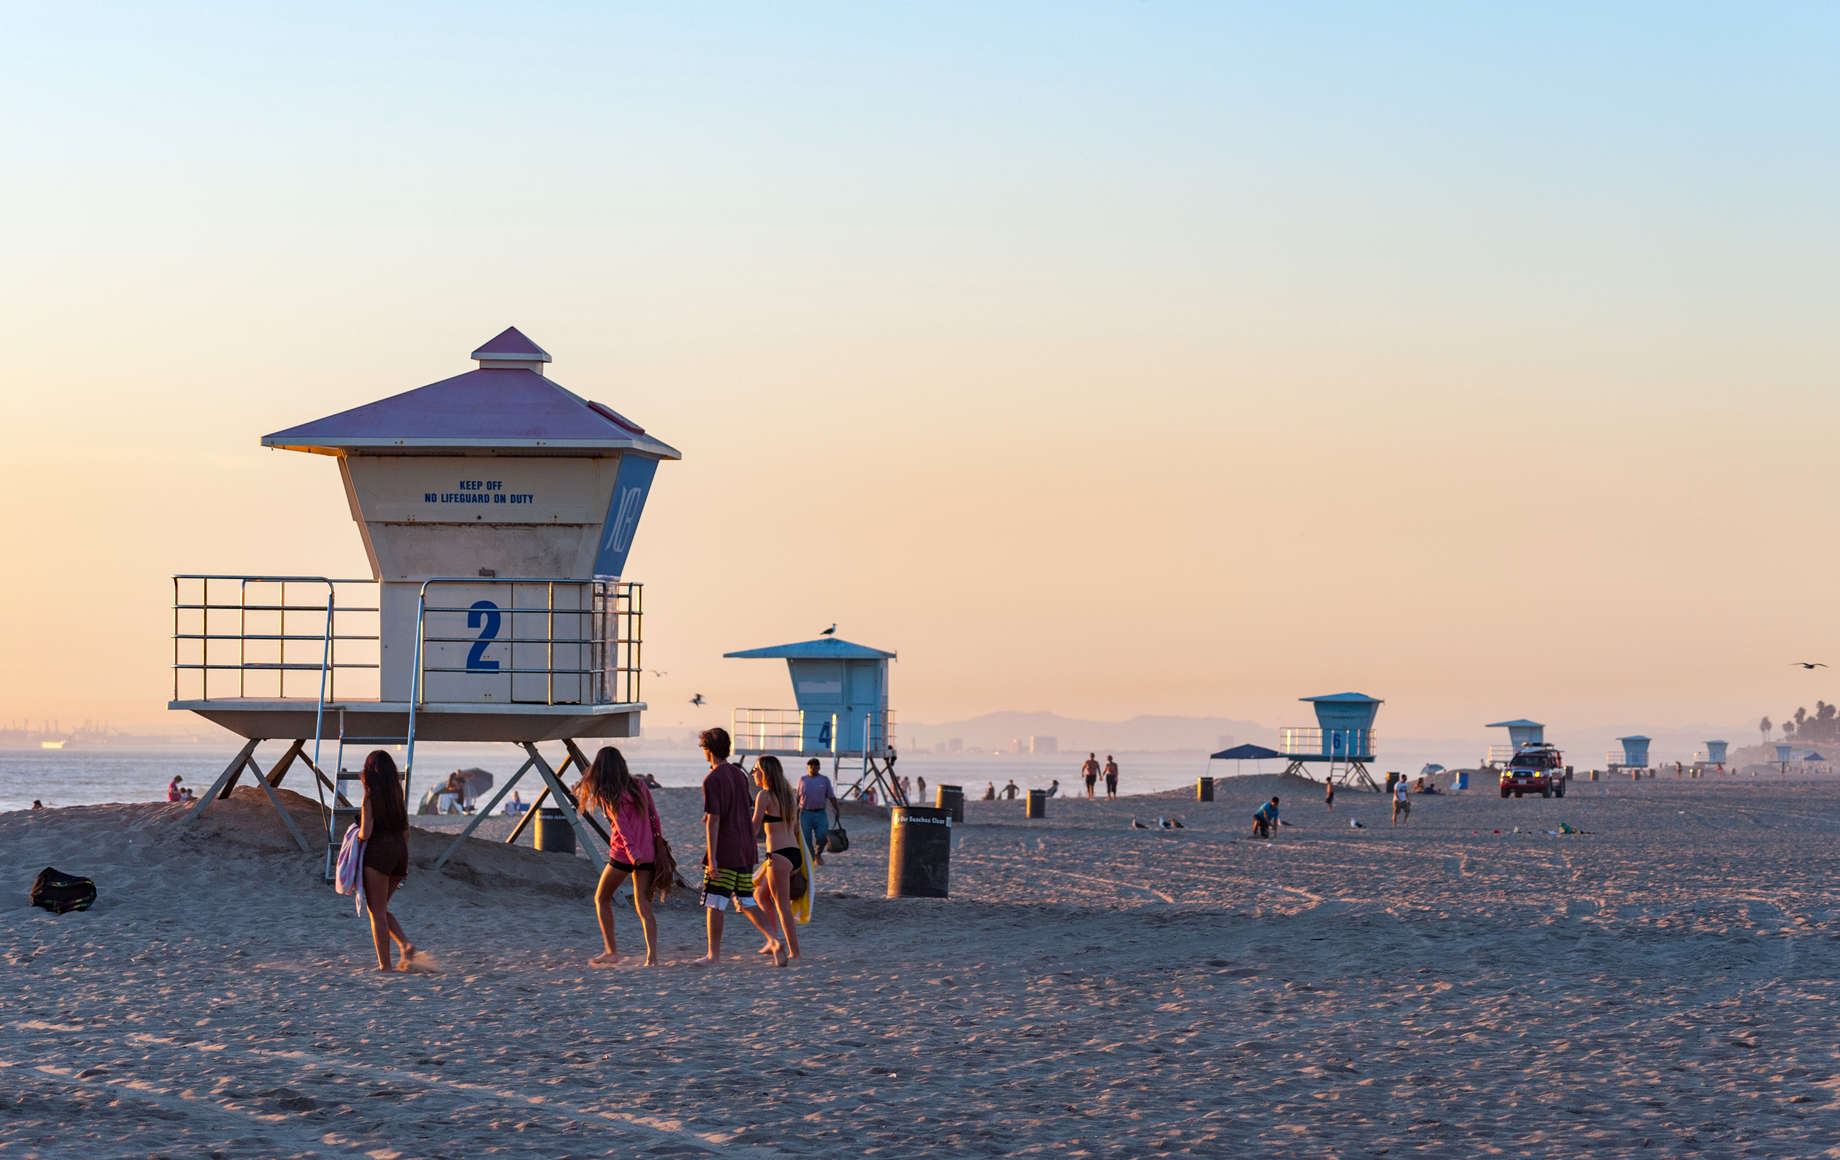 Best Beaches in California: Most Beautiful Beaches to Visit in